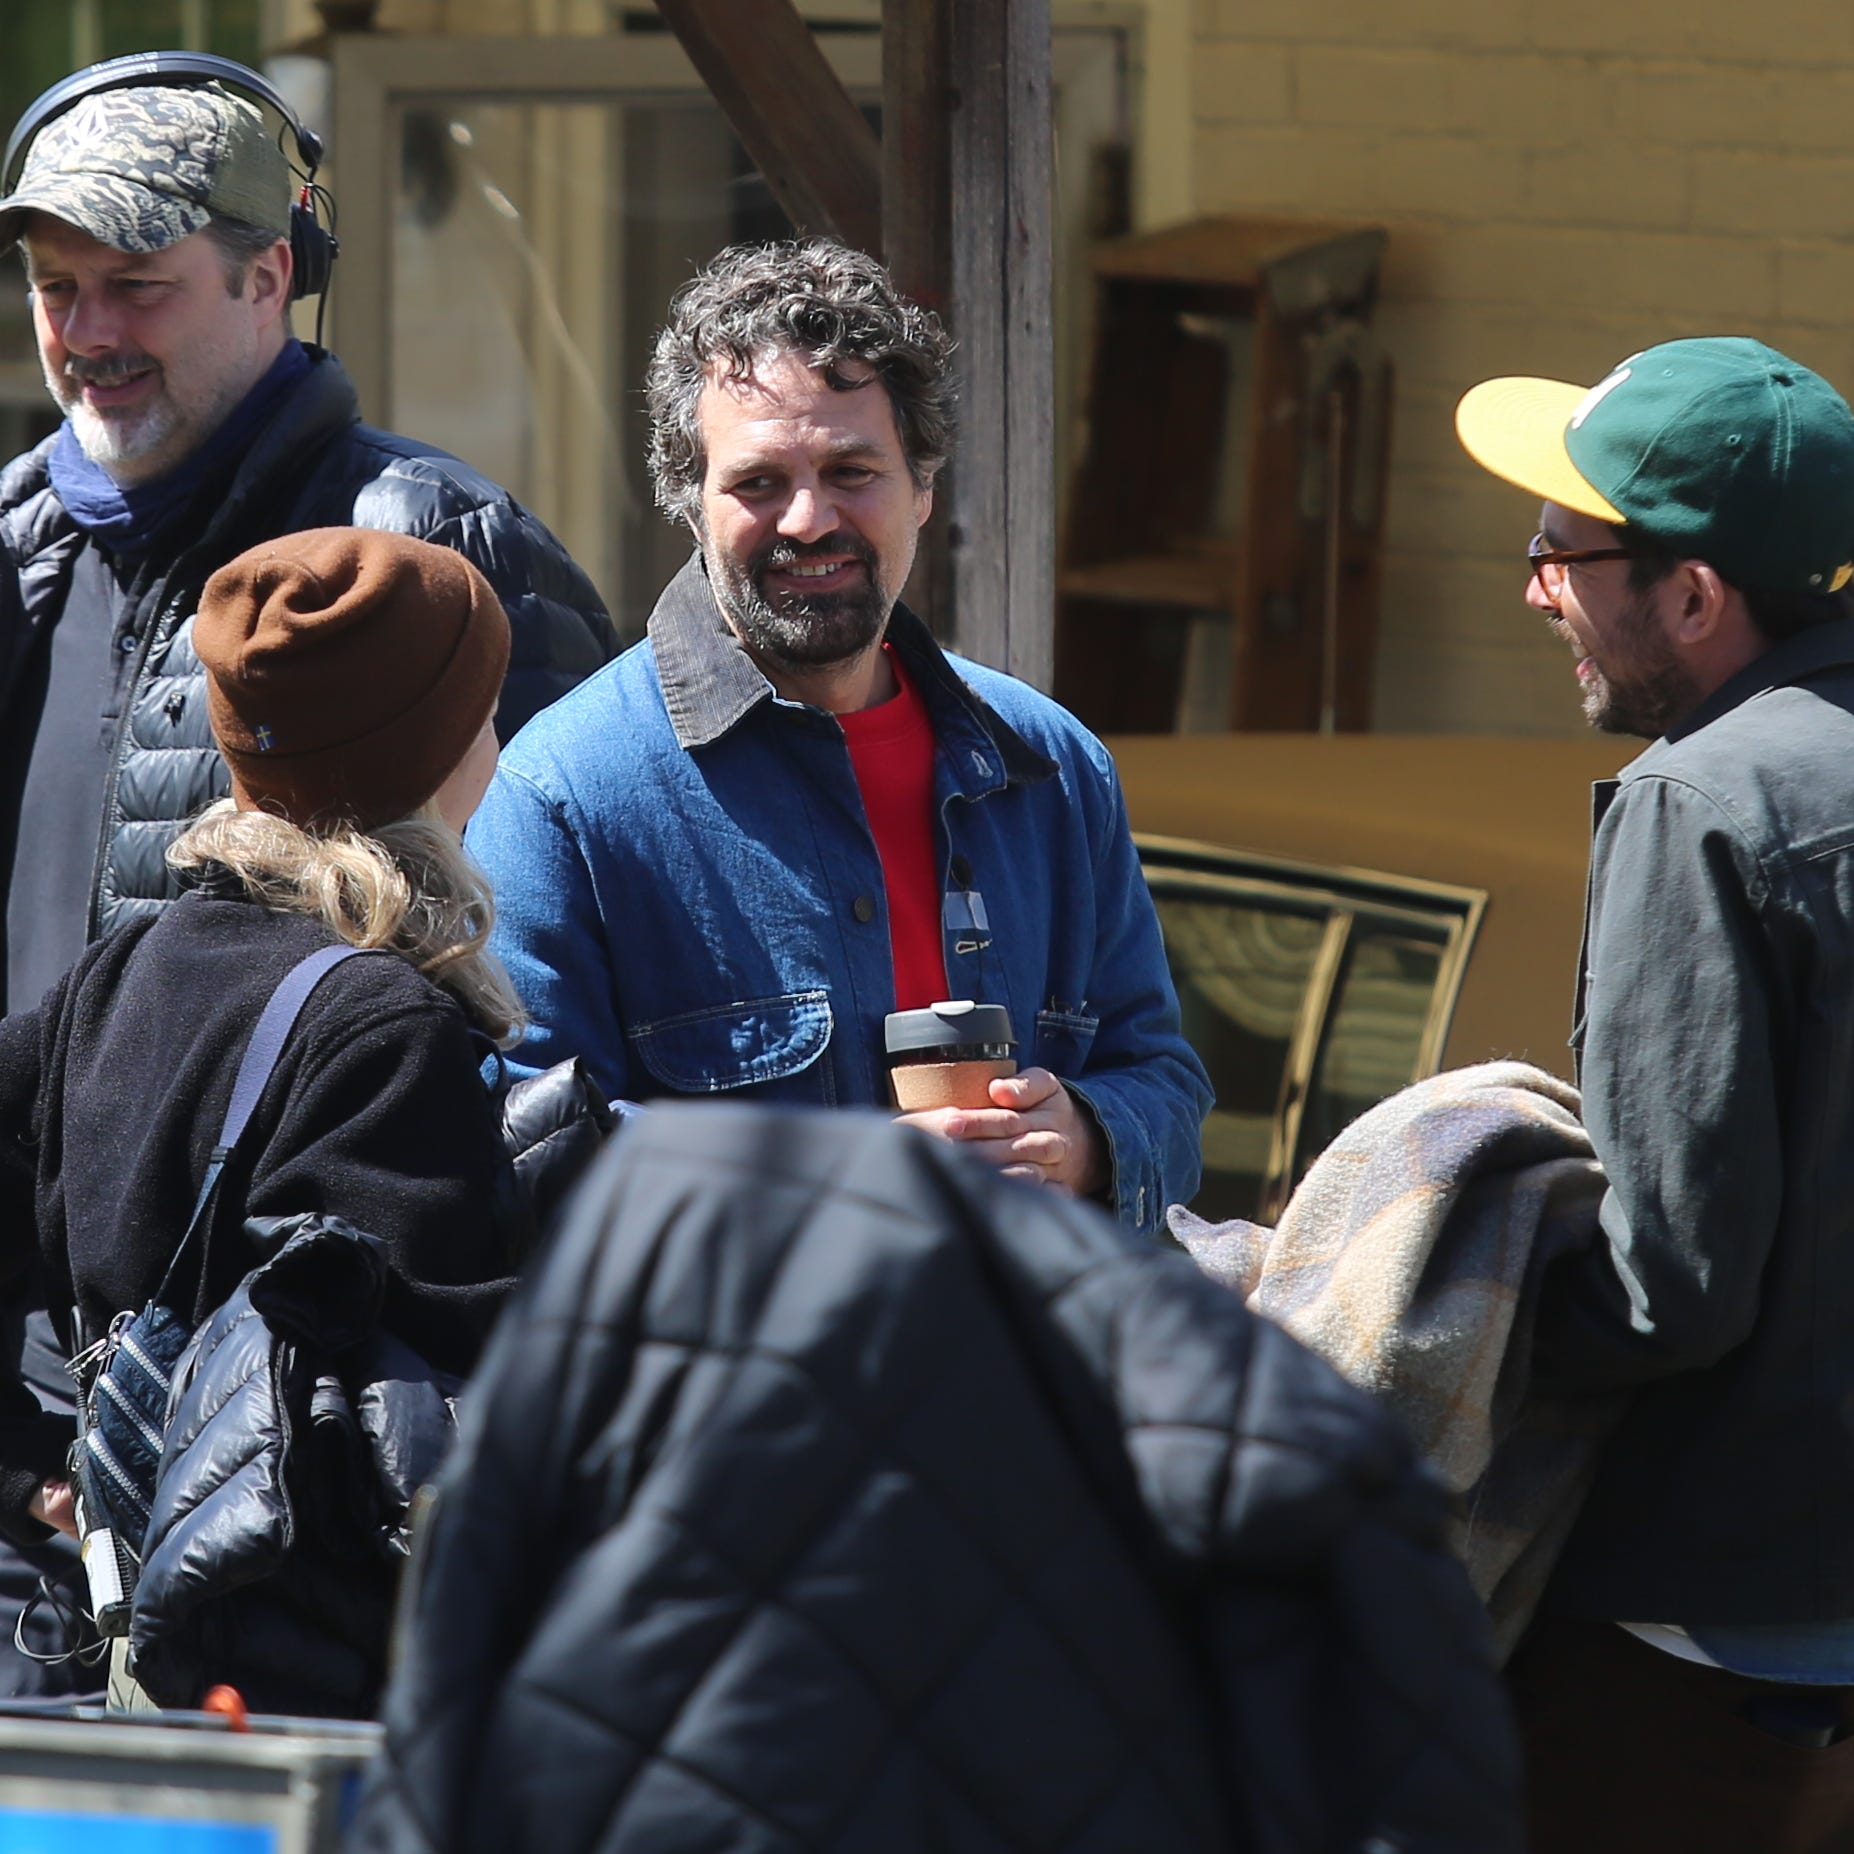 Ruffalo films in Poughkeepsie: HBO production creates buzz, impacts neighborhood